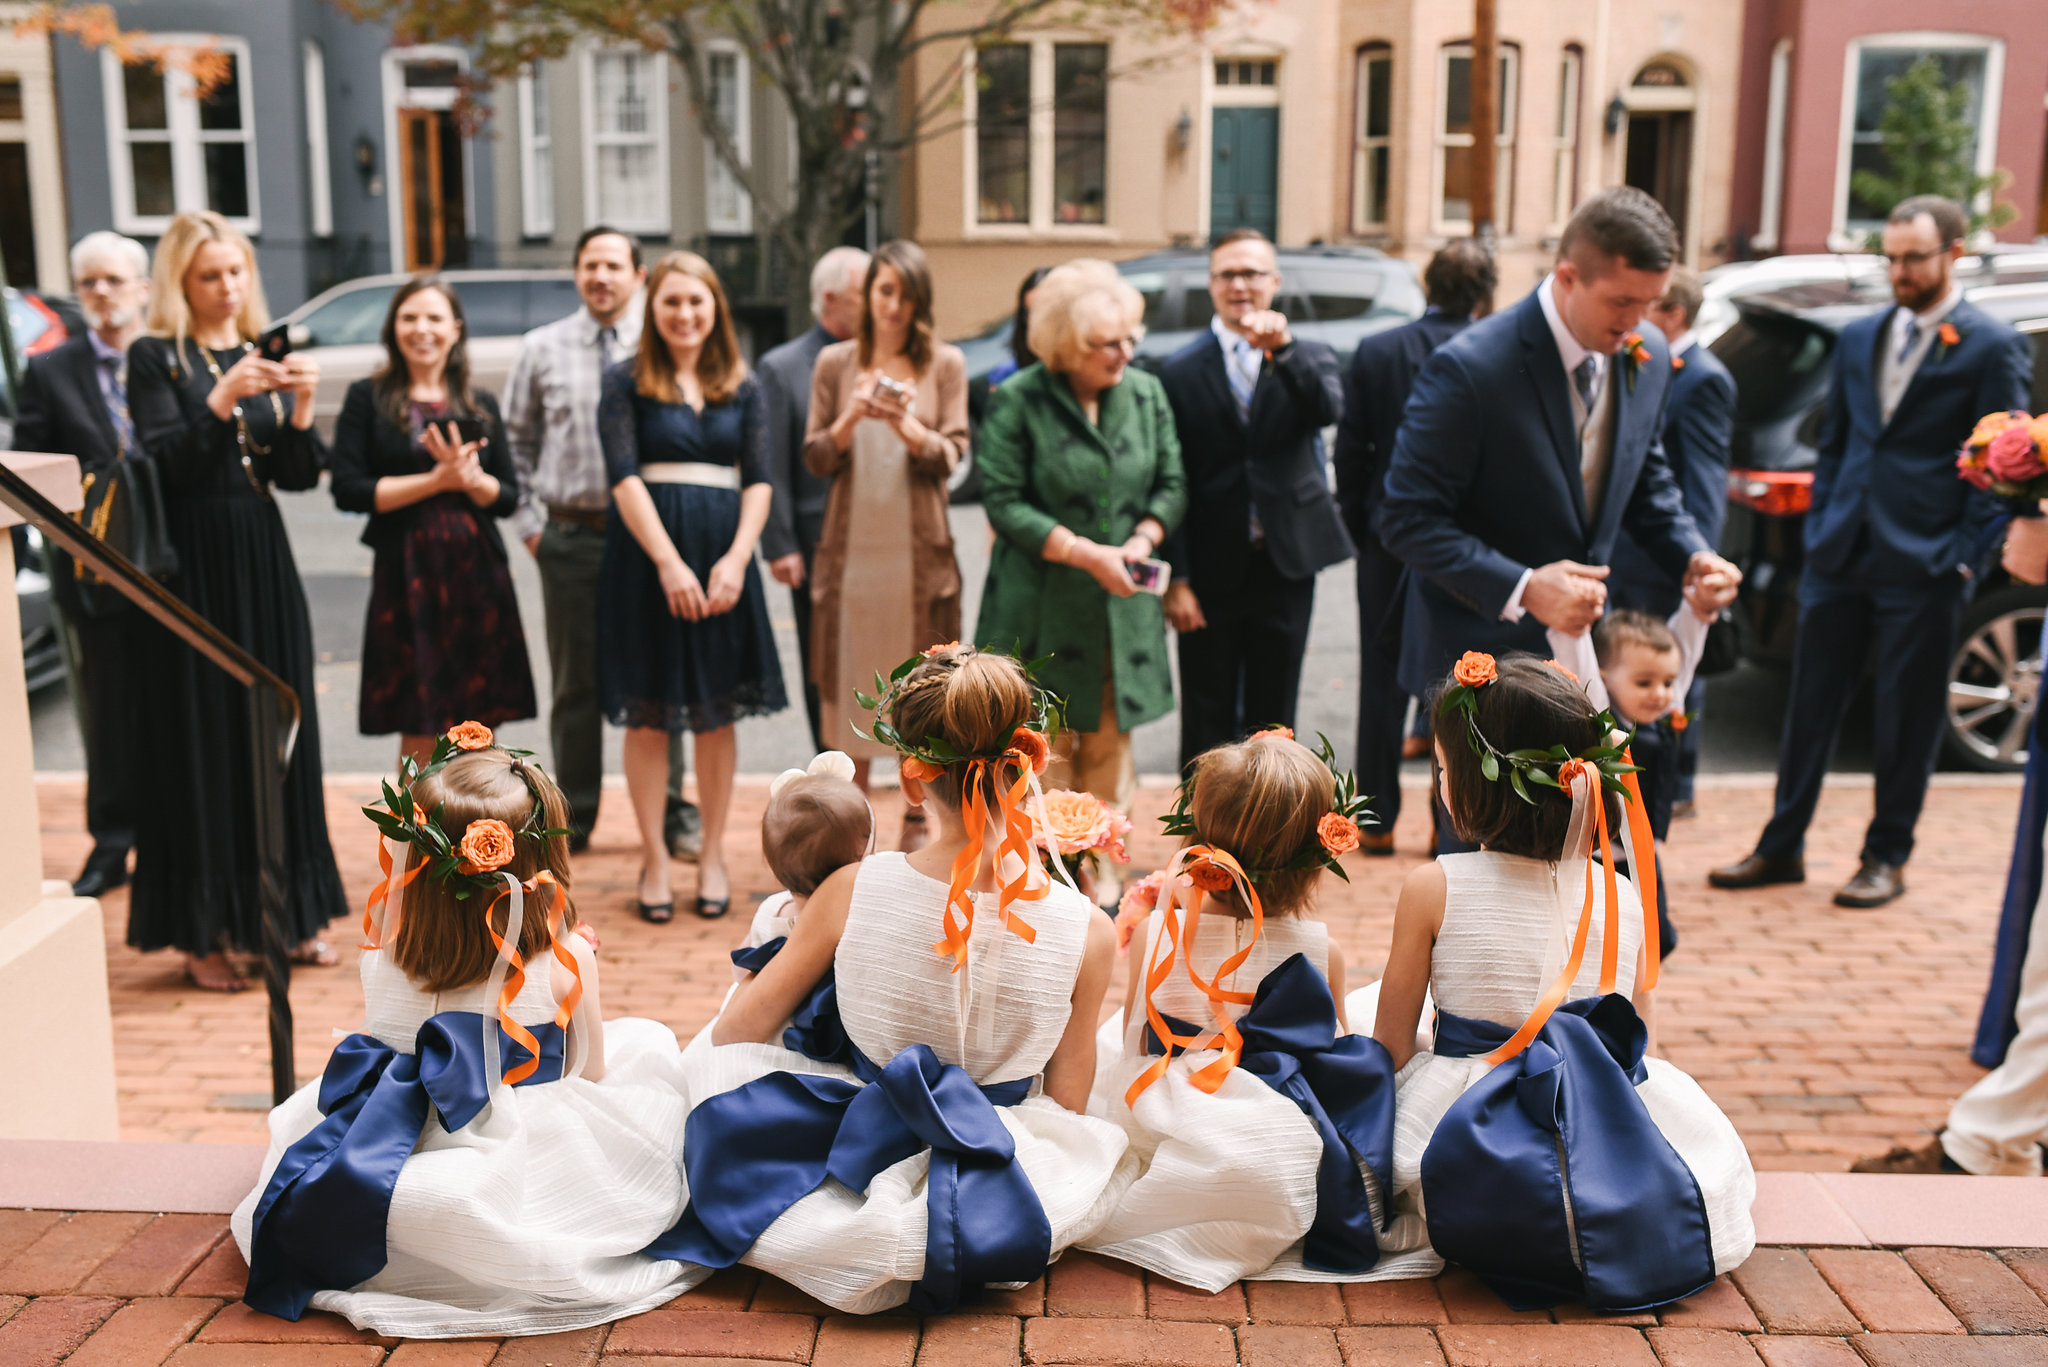 Alexandria, Fall Wedding, Historic, The Enchanted Florist, Wedding Party, Bridal Party, Flower Girls, Flower Crown, Wedding Guests, Candid Photo